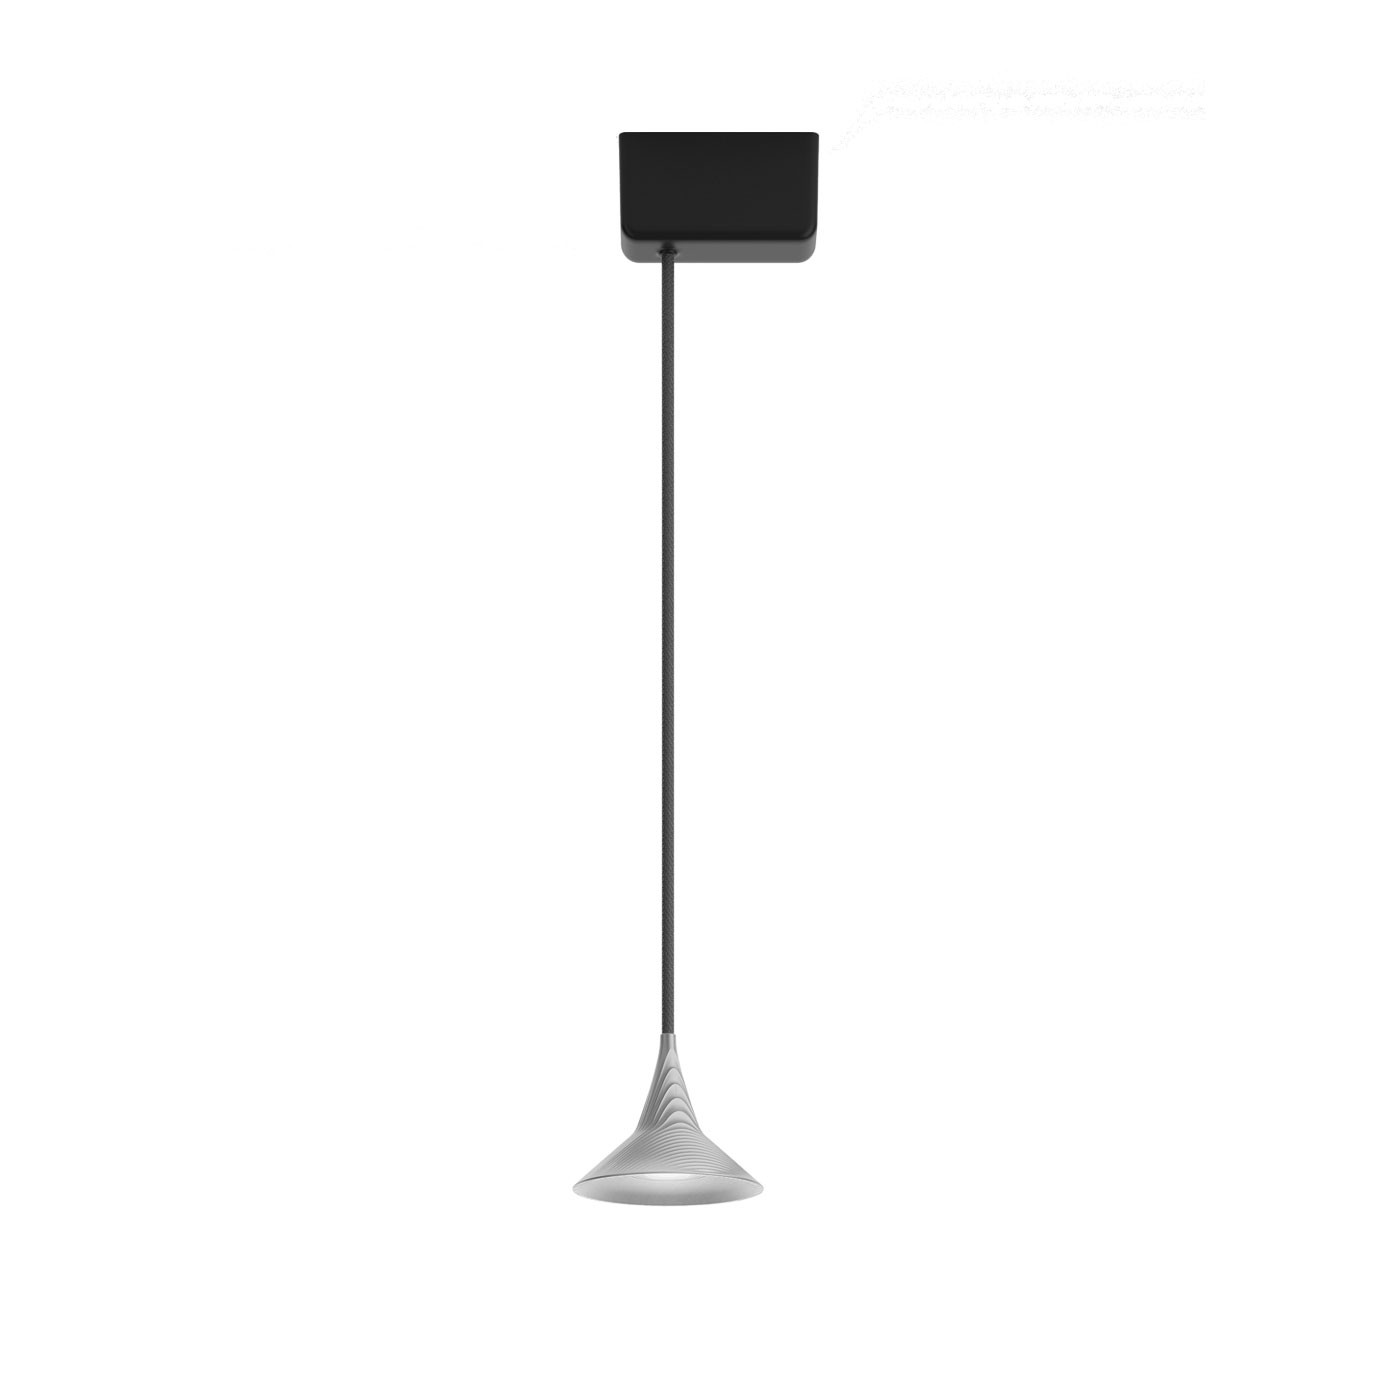 Artemide Unterlinden Sospensione LED